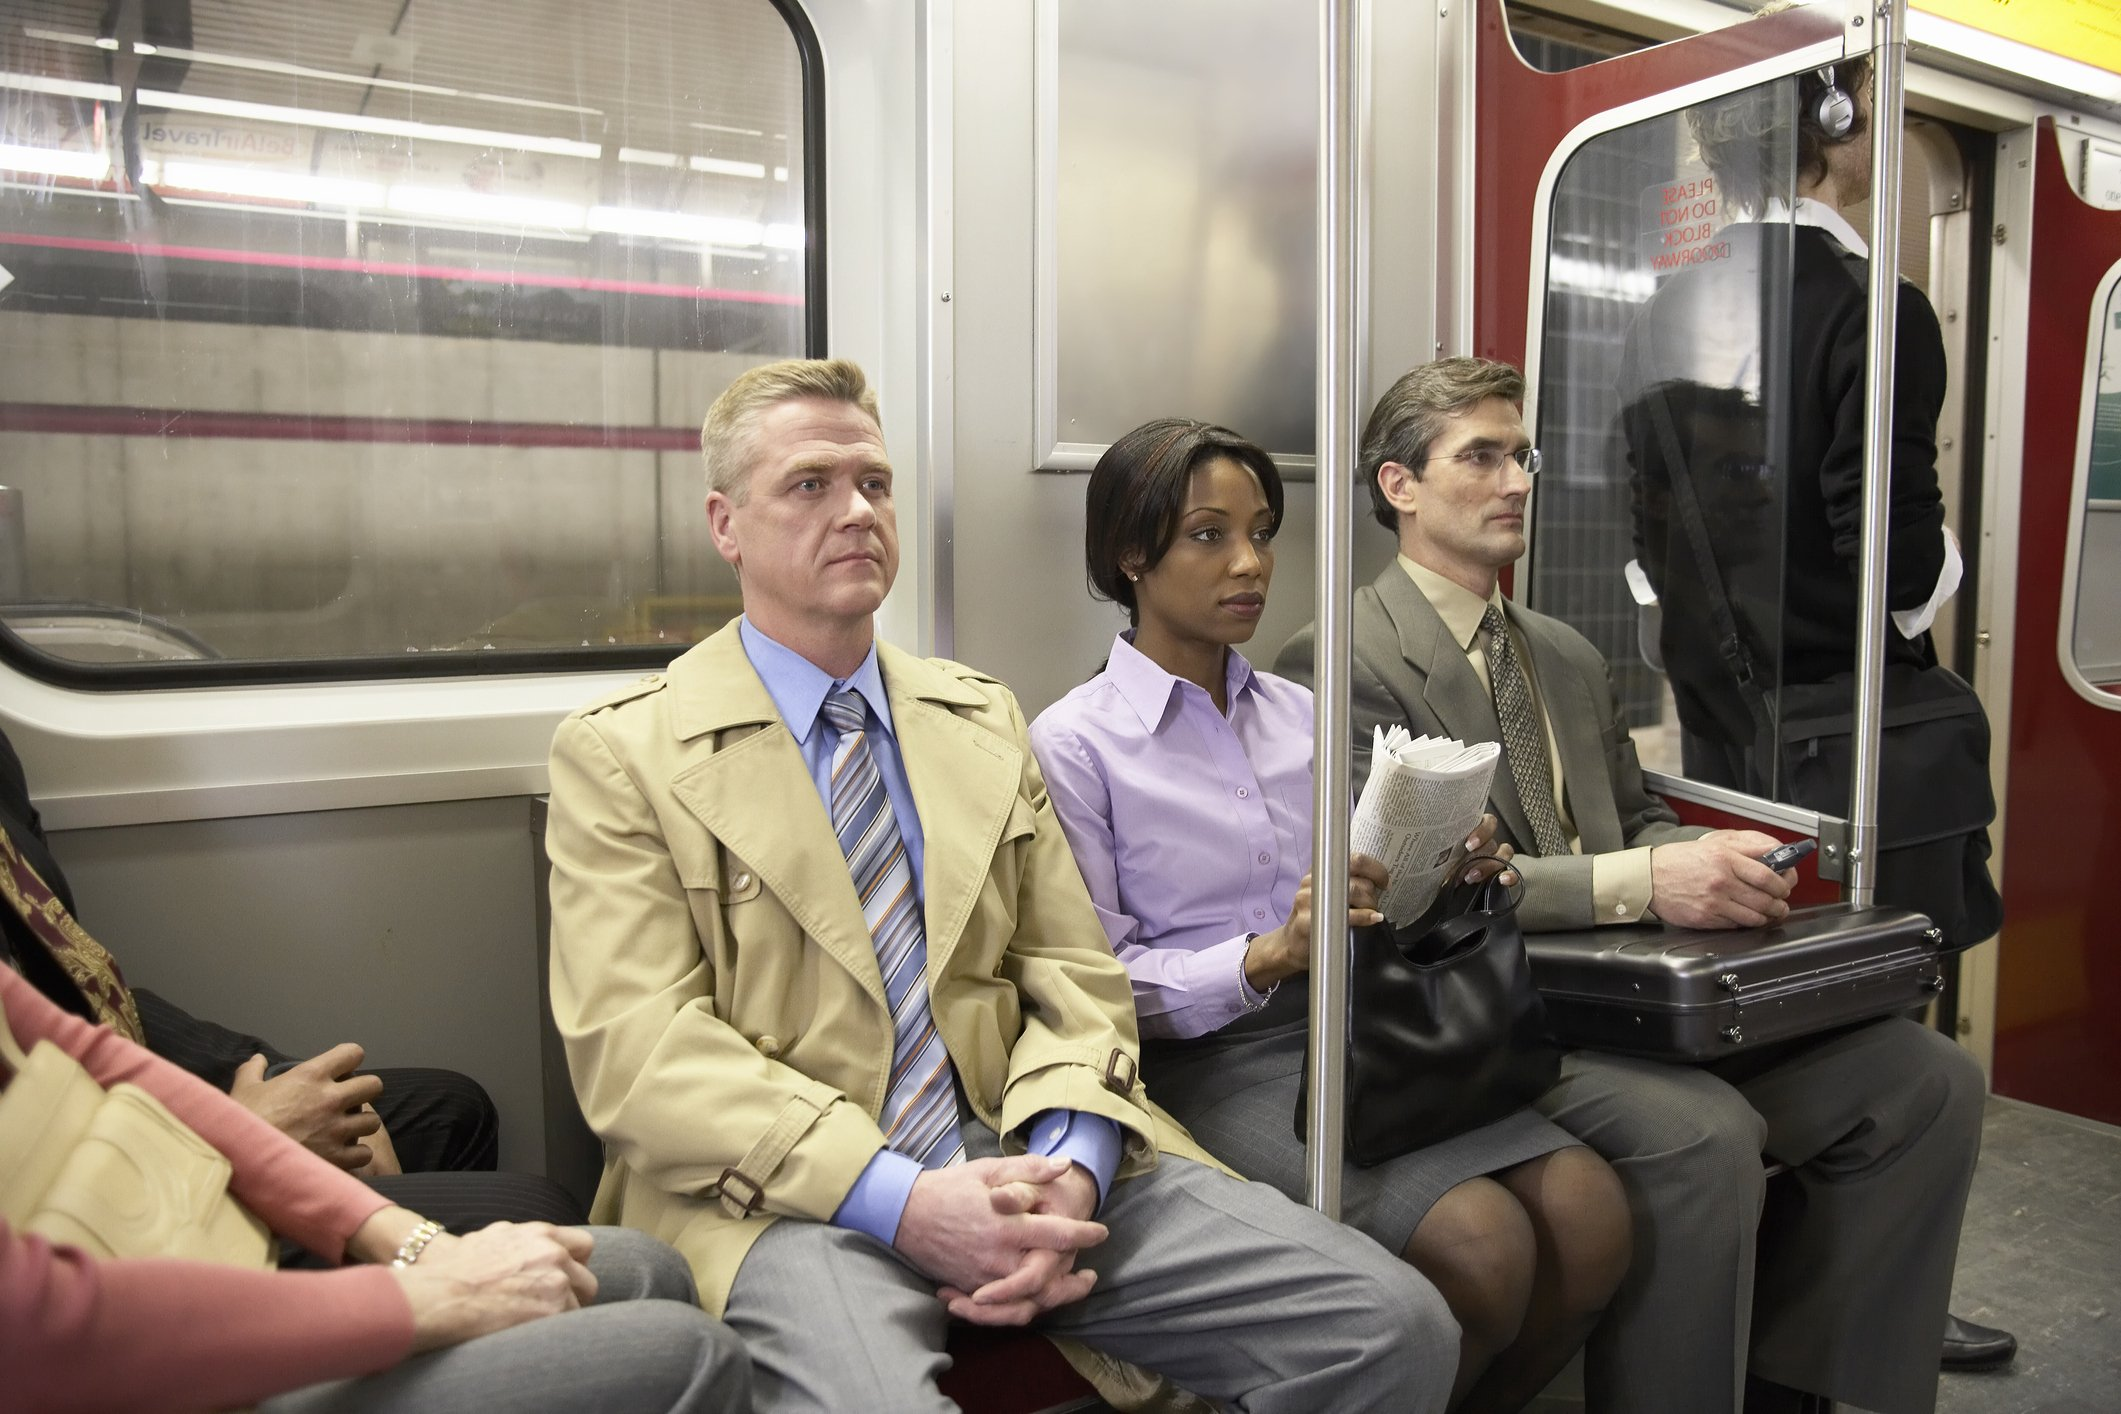 People seated side by side in a subway train.   Photo: Getty Images